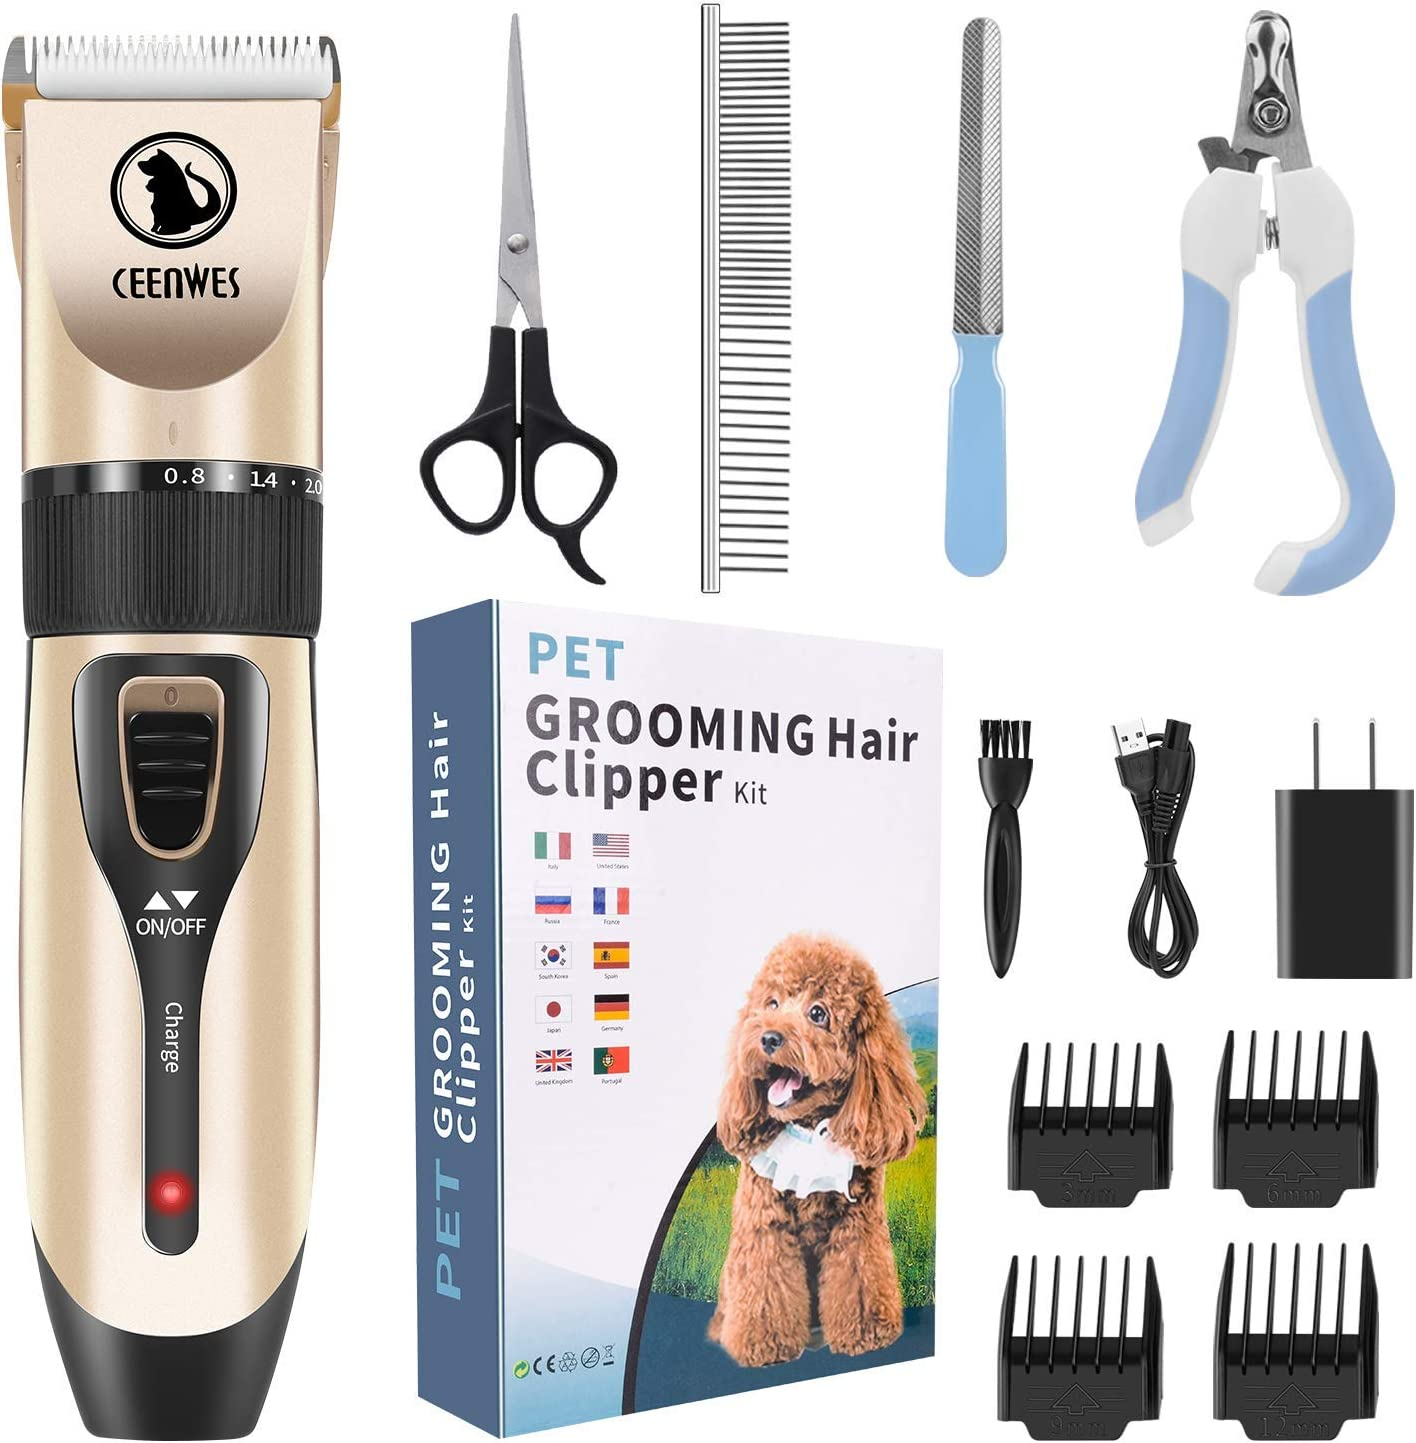 Ceenwes Cordless Pet Grooming Clippers Professional Pet Hair Clippers Detachable Blade with 4 Comb Guides for Small Medium & Large Dogs Cats and Other House Animals Pet Grooming Kit